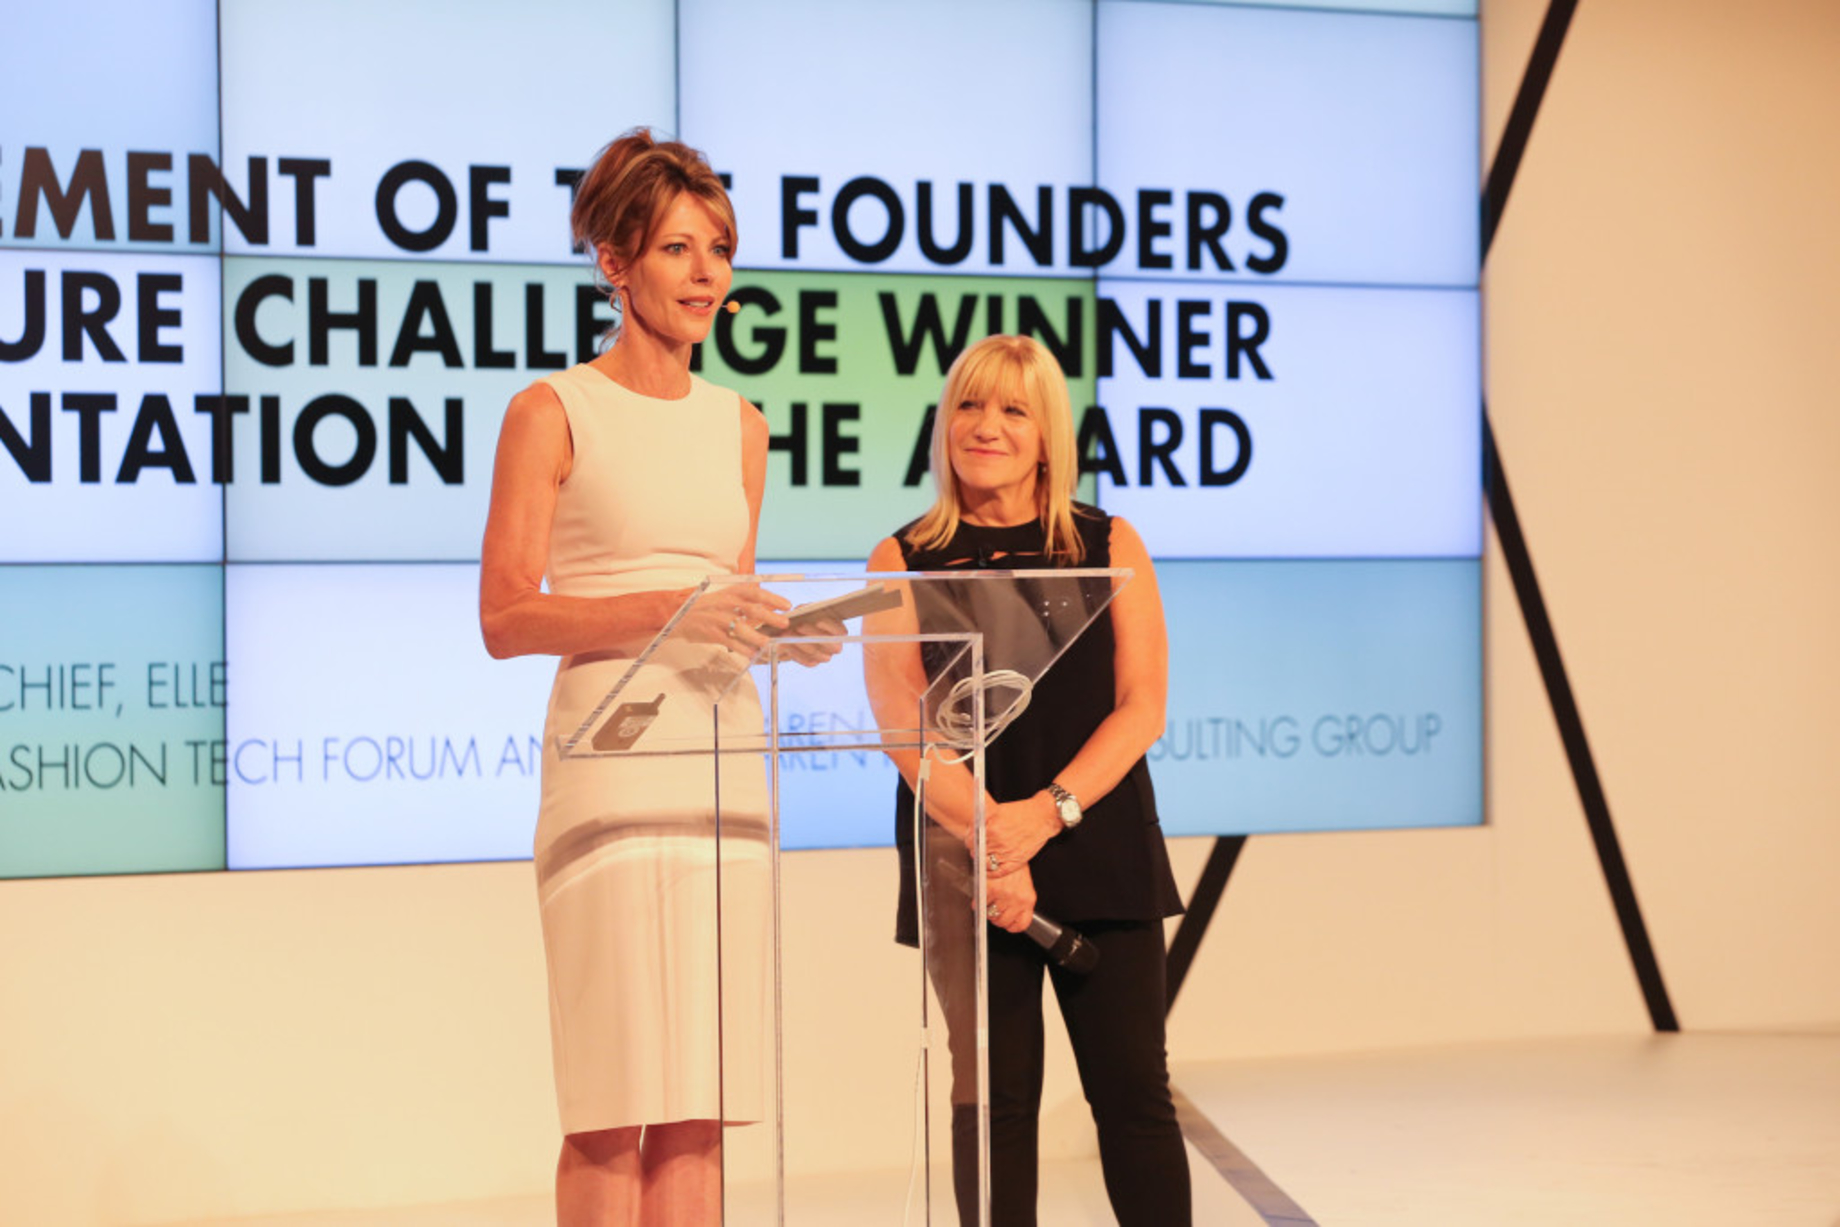 Karen Harvey and ELLE Present the Founders of the Future Challenge